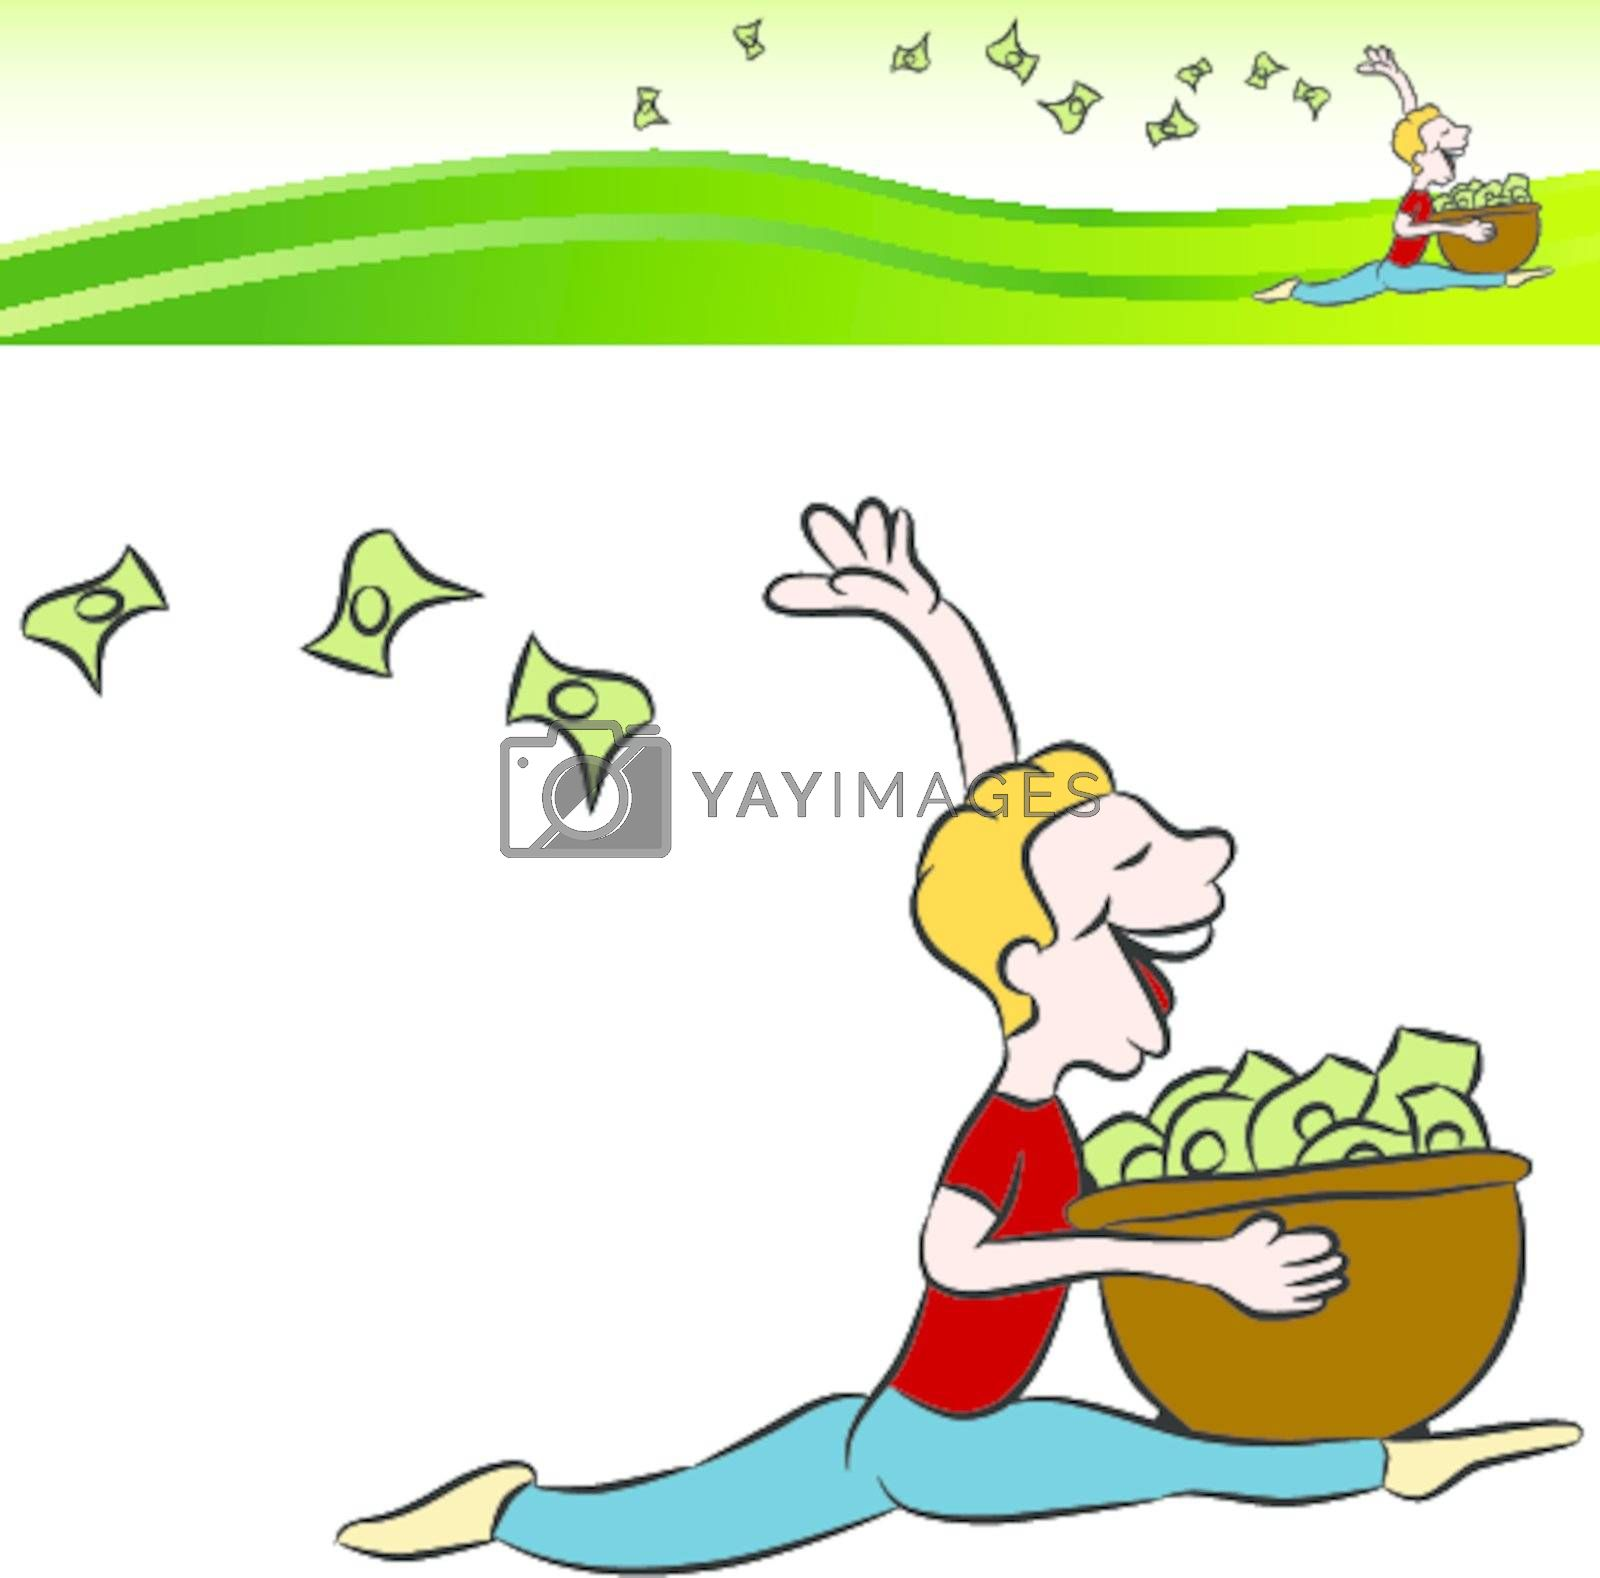 An image of a man running tossing money from a basket with banner.